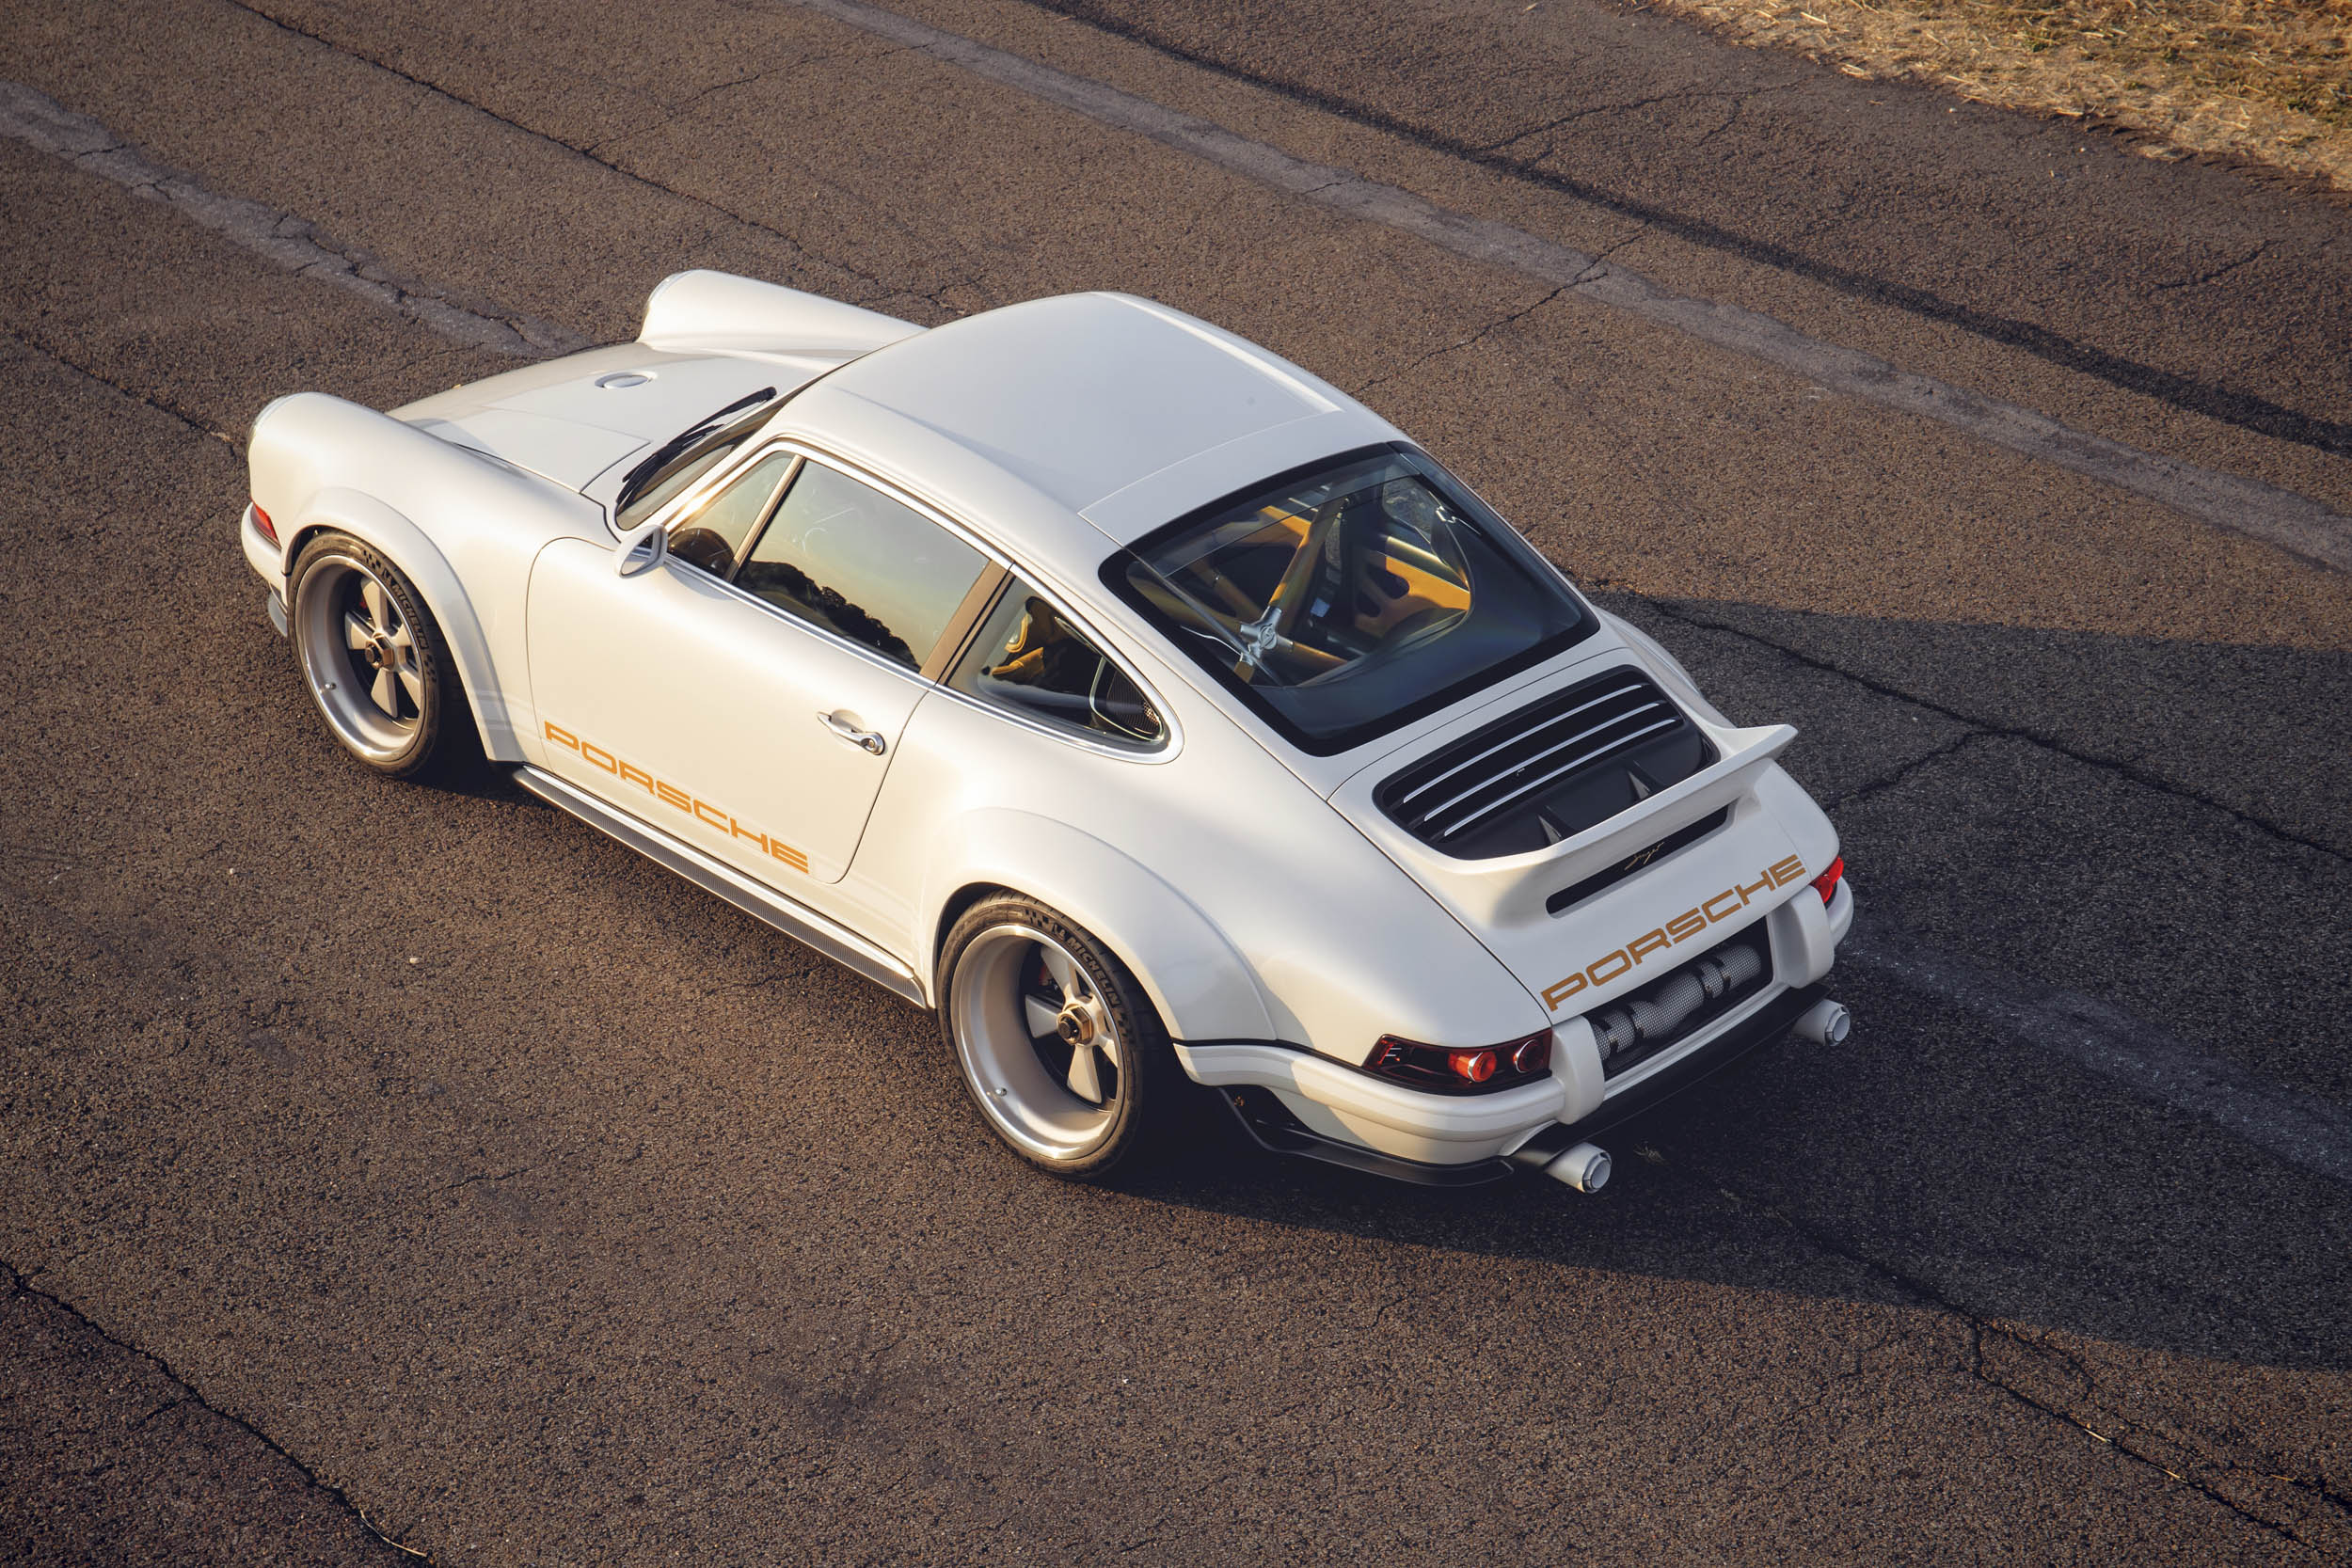 1990 Porsche 911 (964), reimagined by Singer